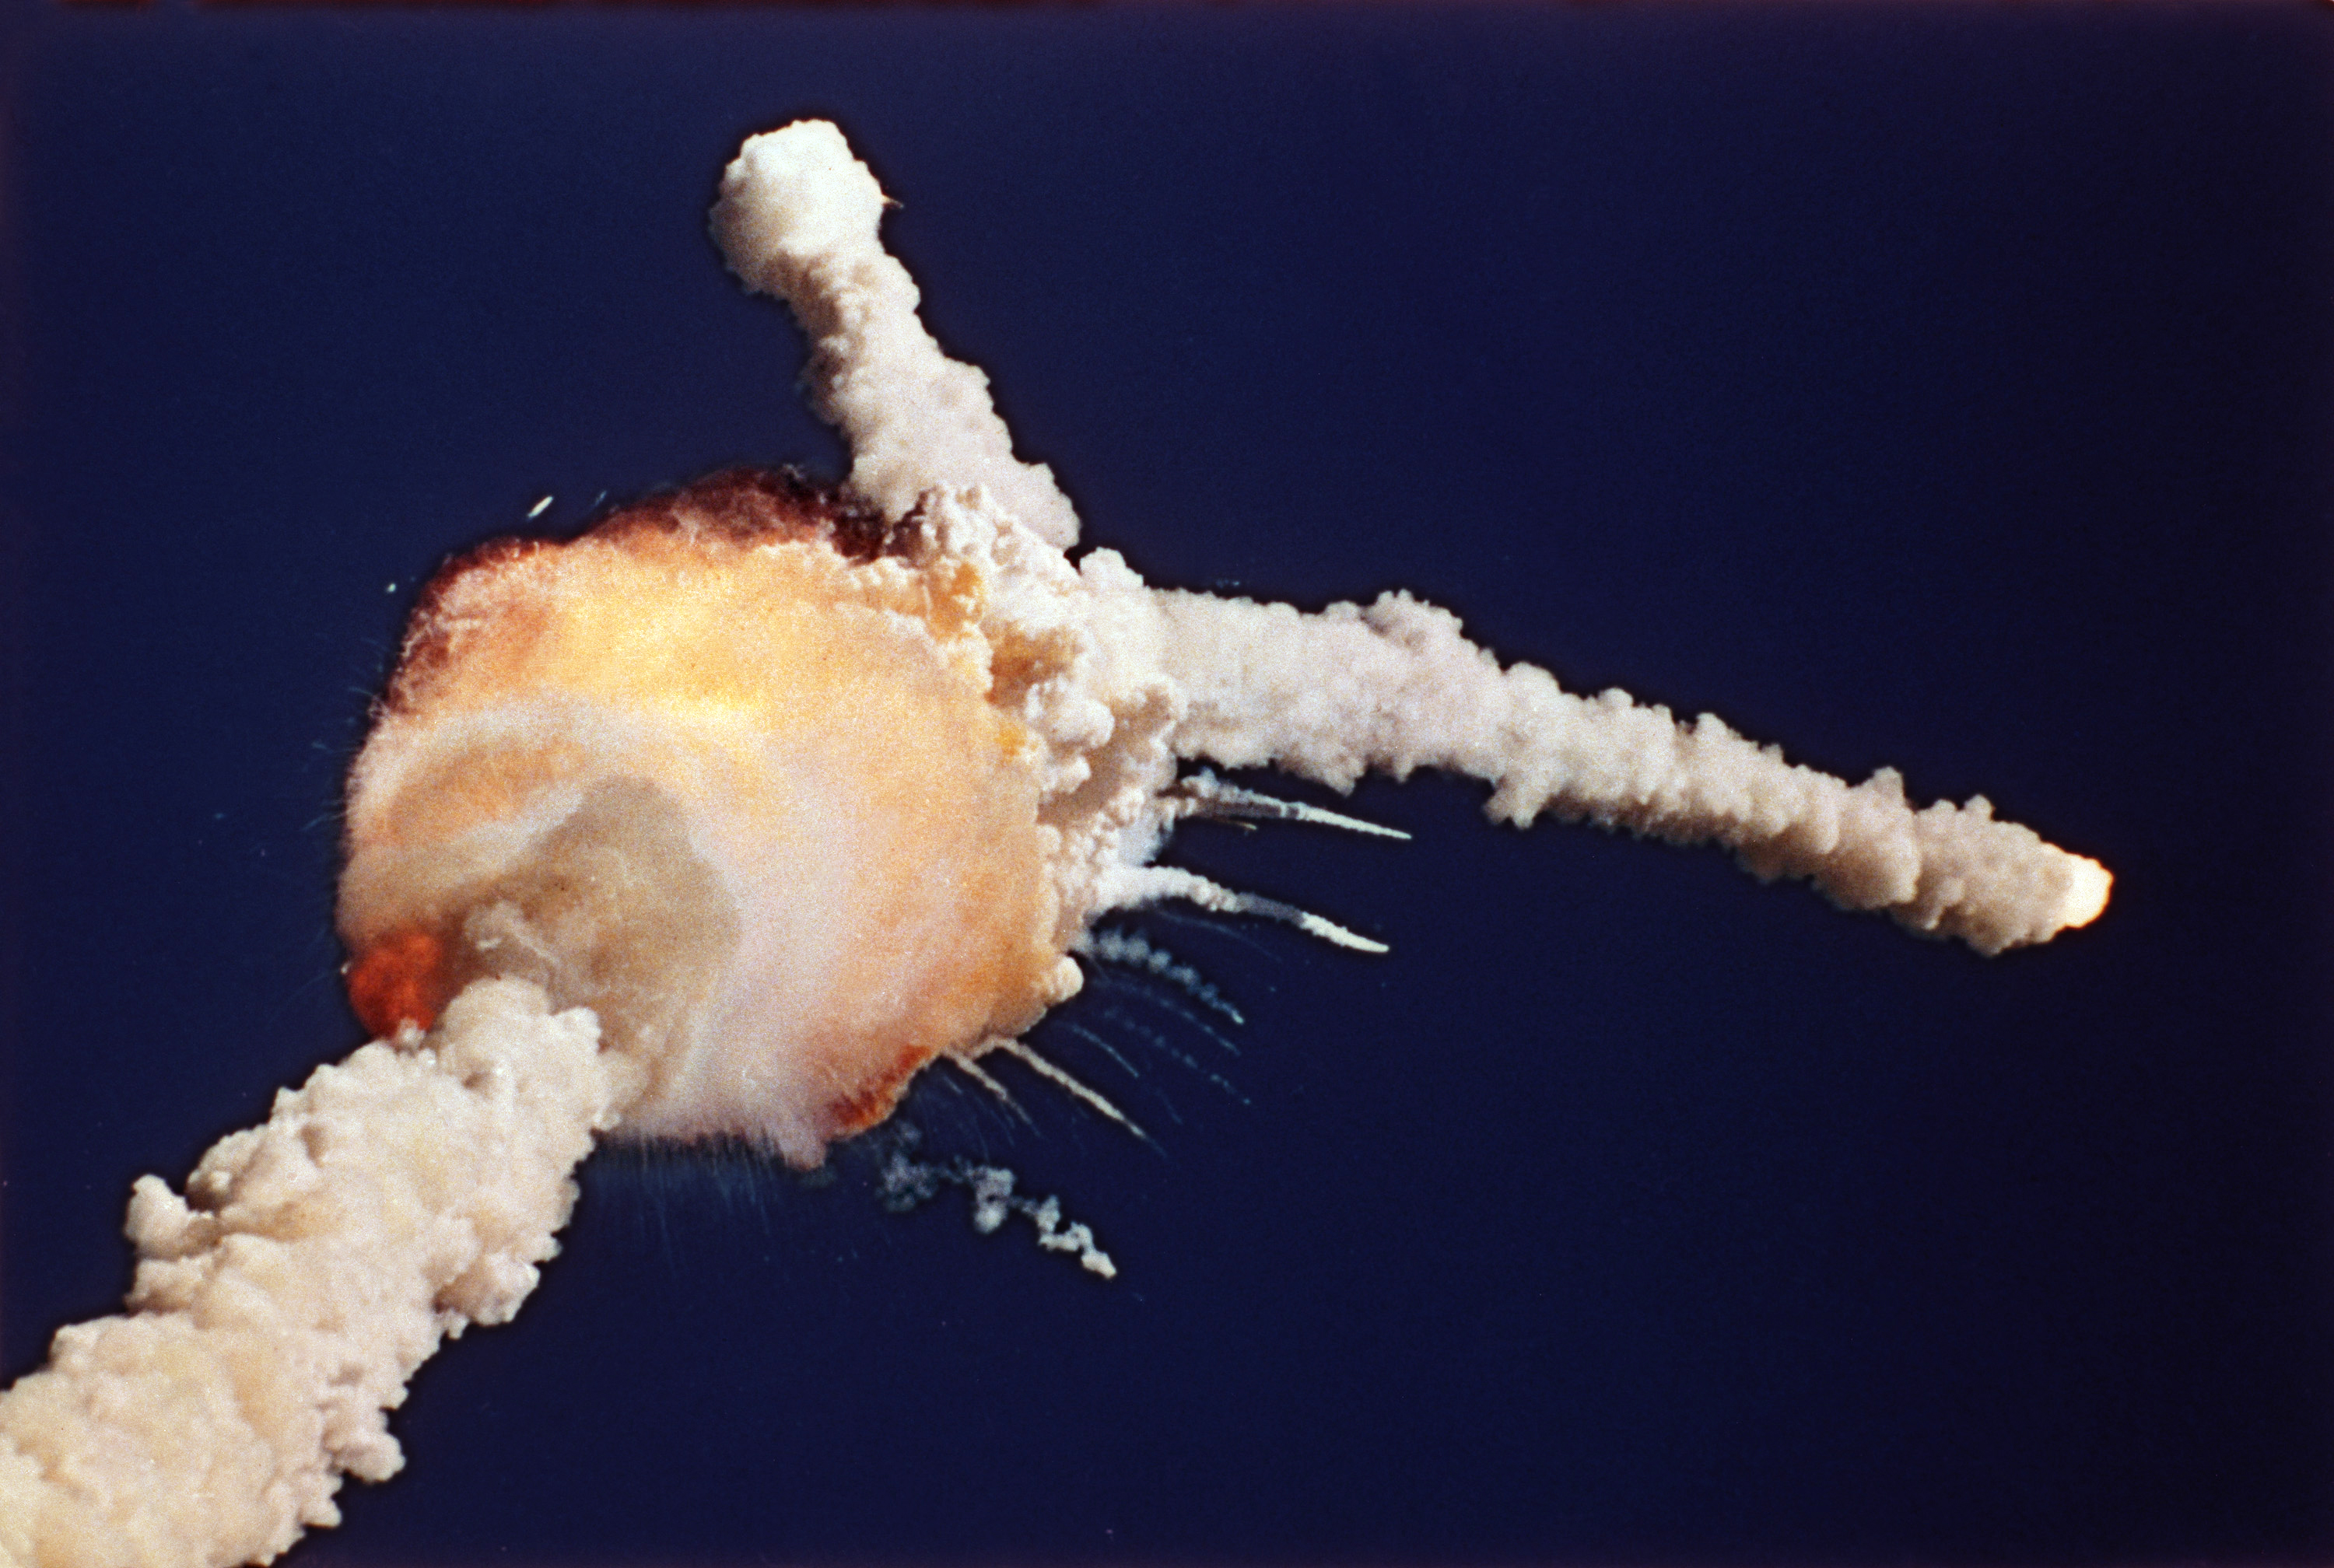 group decision fiascos continue space shuttle challenger and a revised groupthink framework